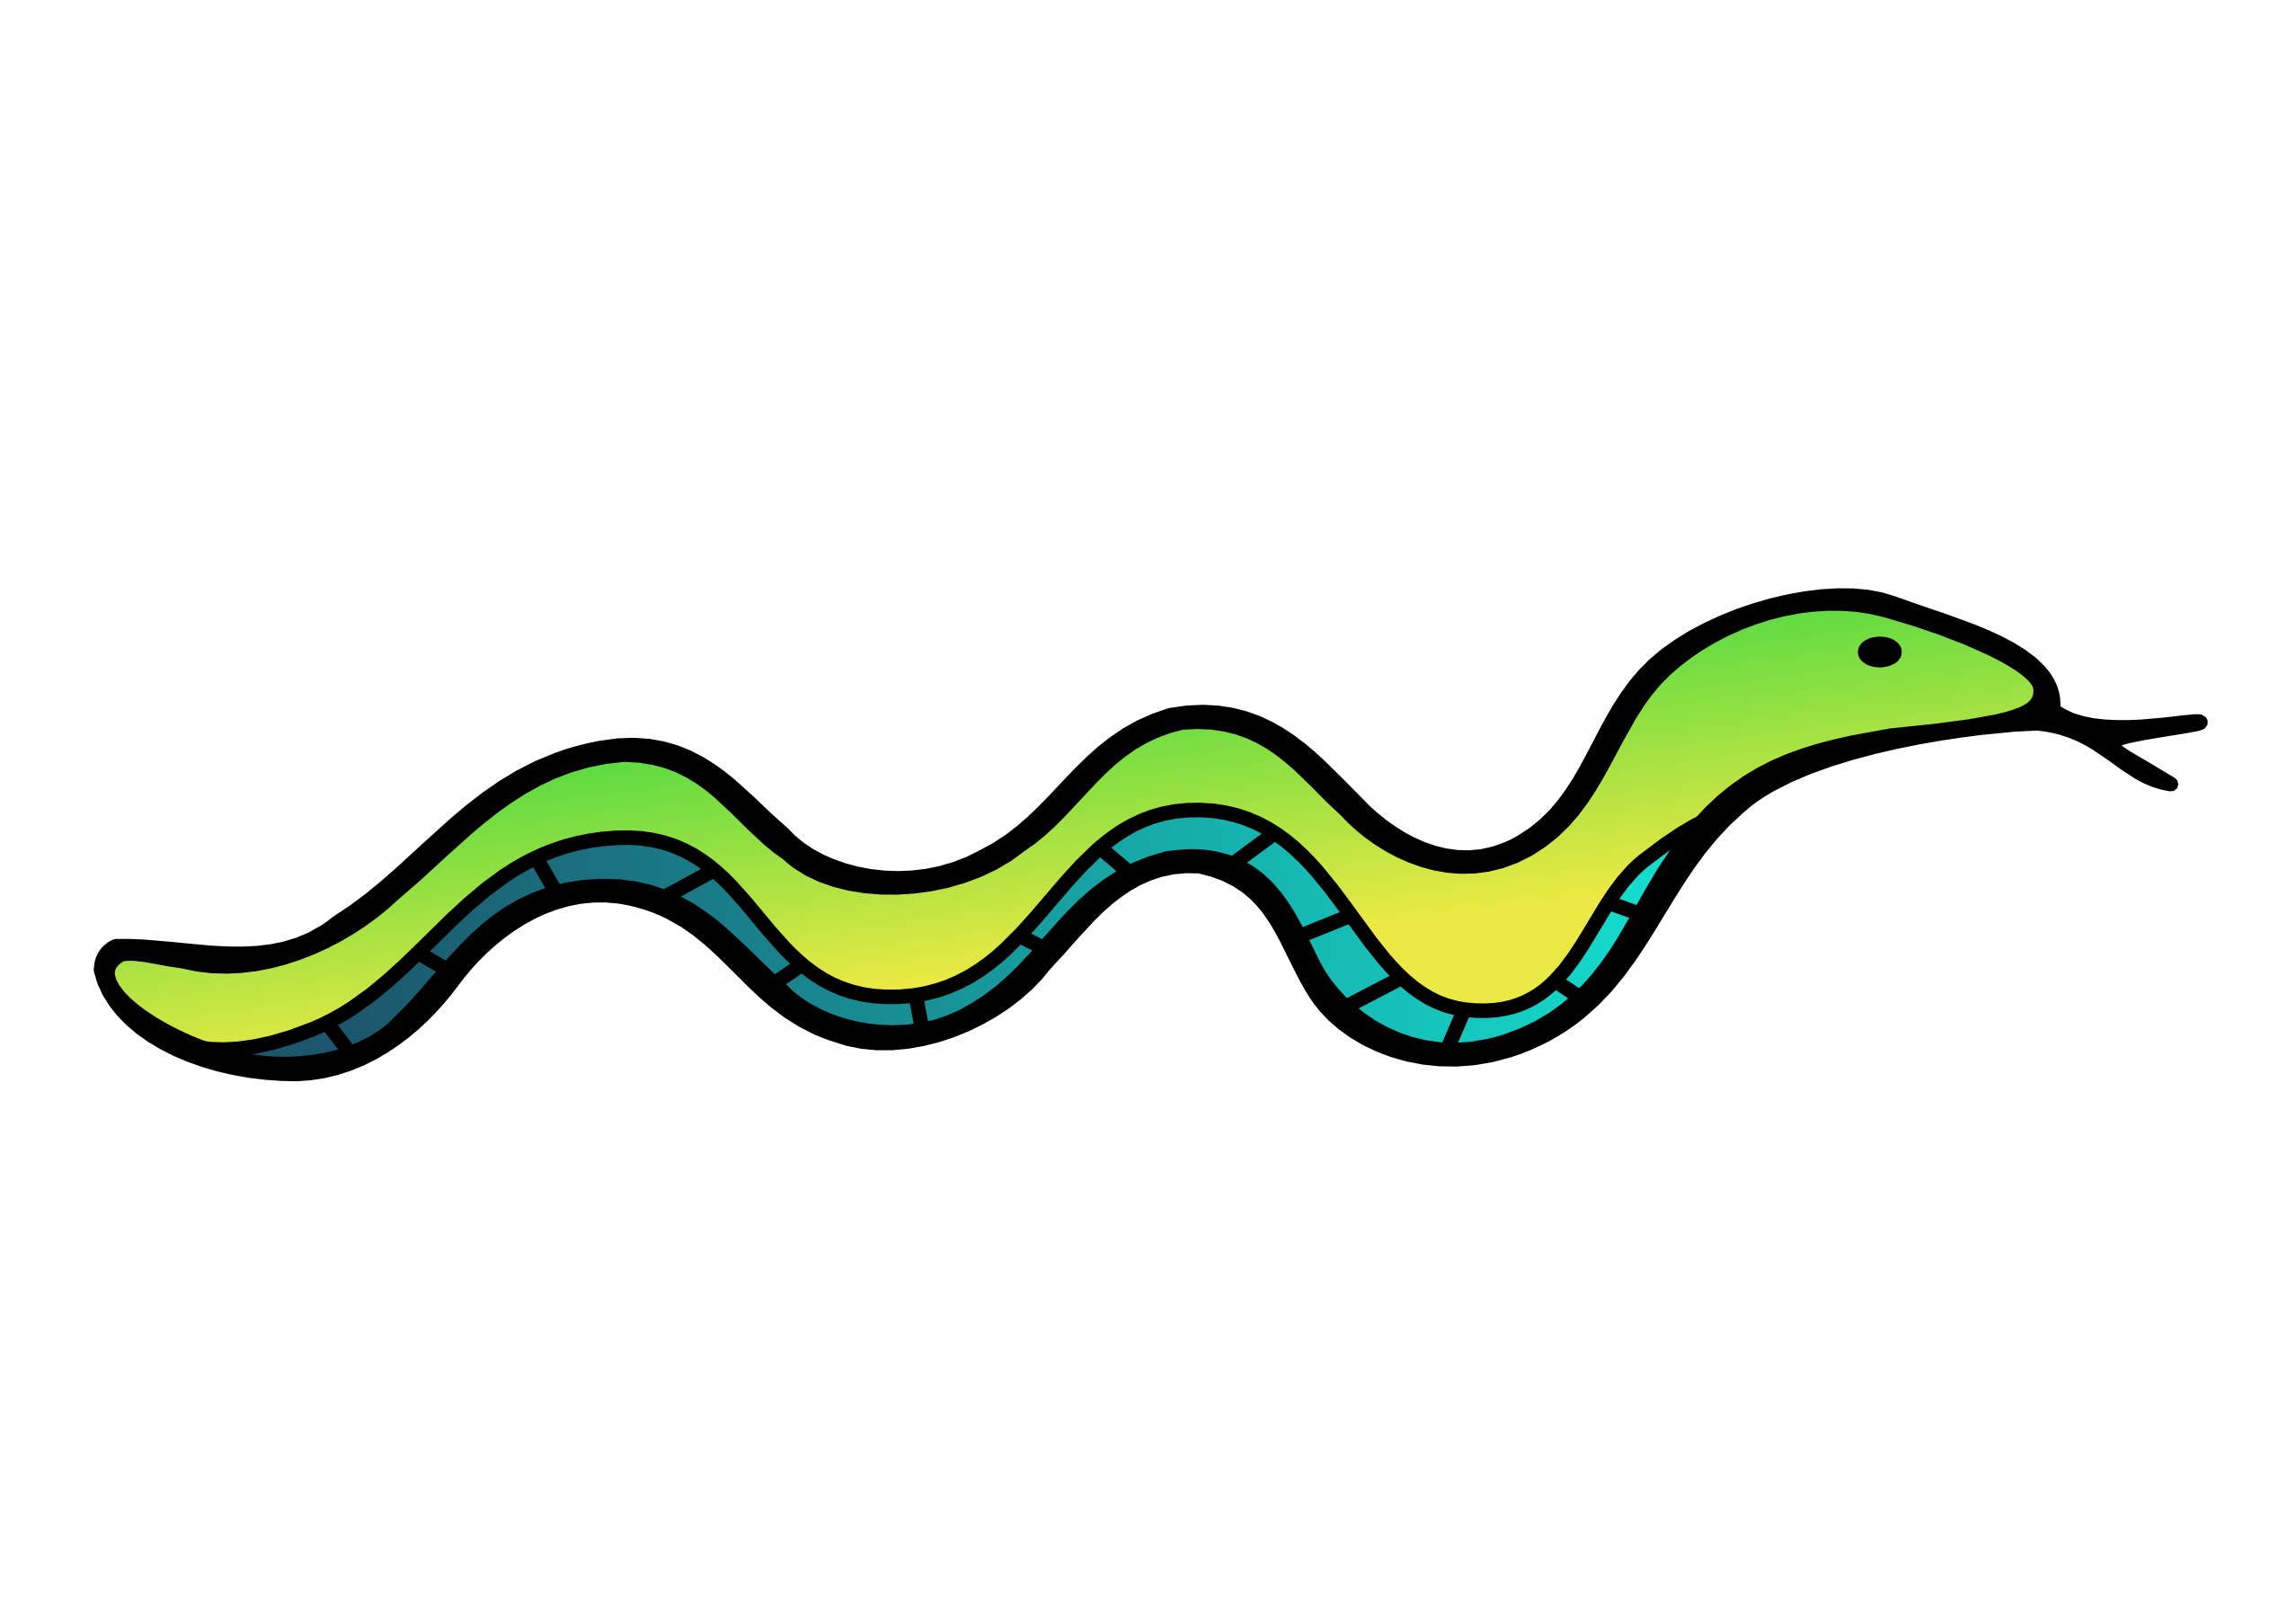 Snake clipart stretchy.  collection of halloween